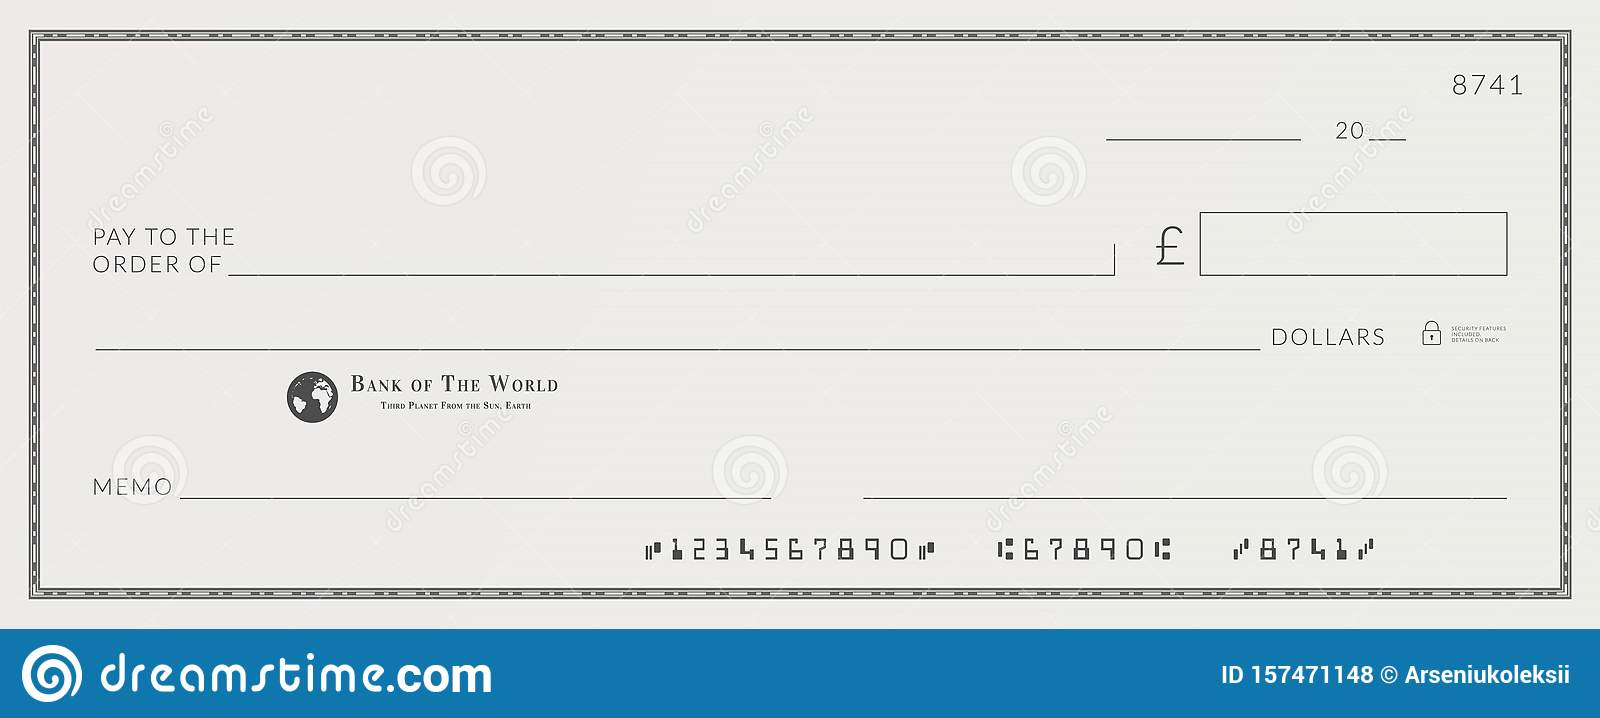 Free Bank Check Template from thumbs.dreamstime.com